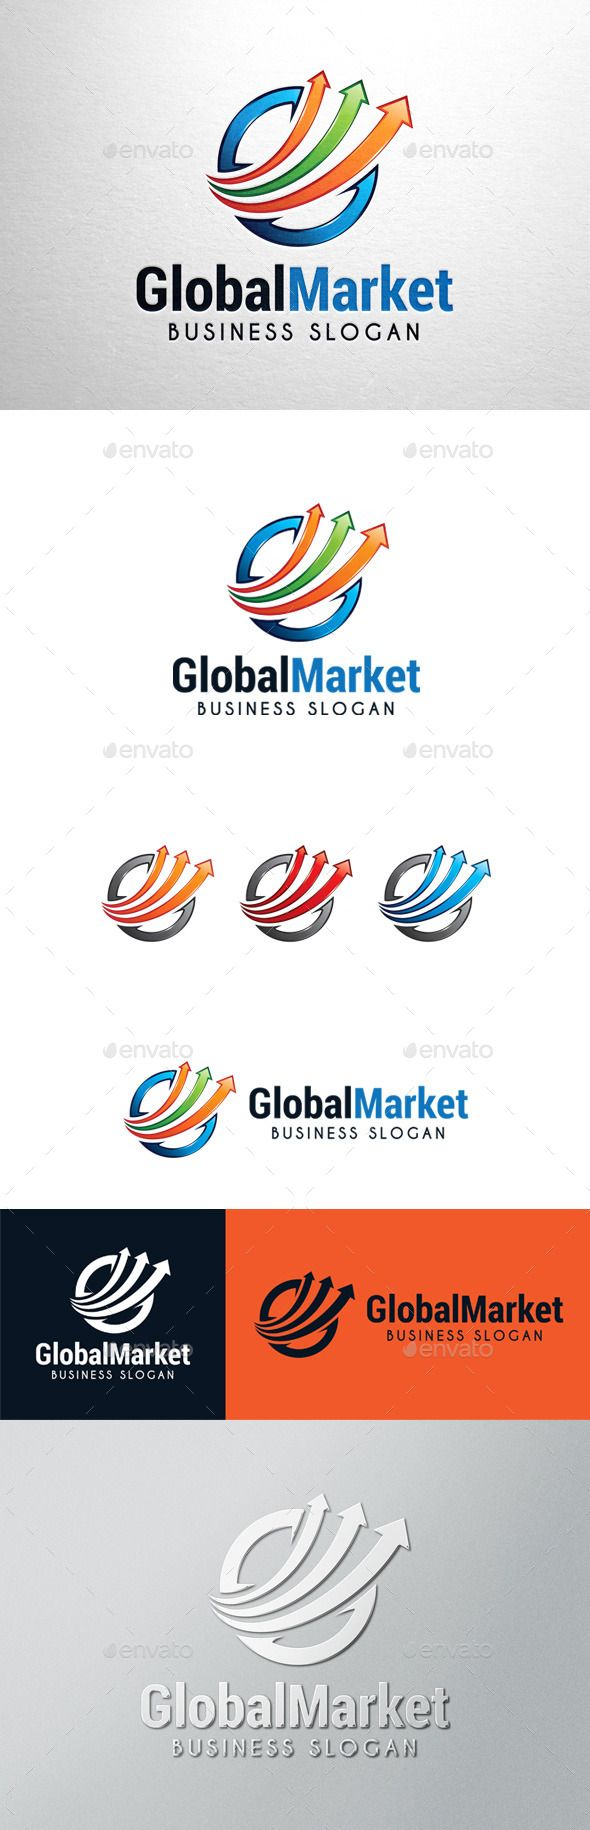 14 best logo import export company images on pinterest logo global market graph logo template vector eps ai download here http accmission Gallery